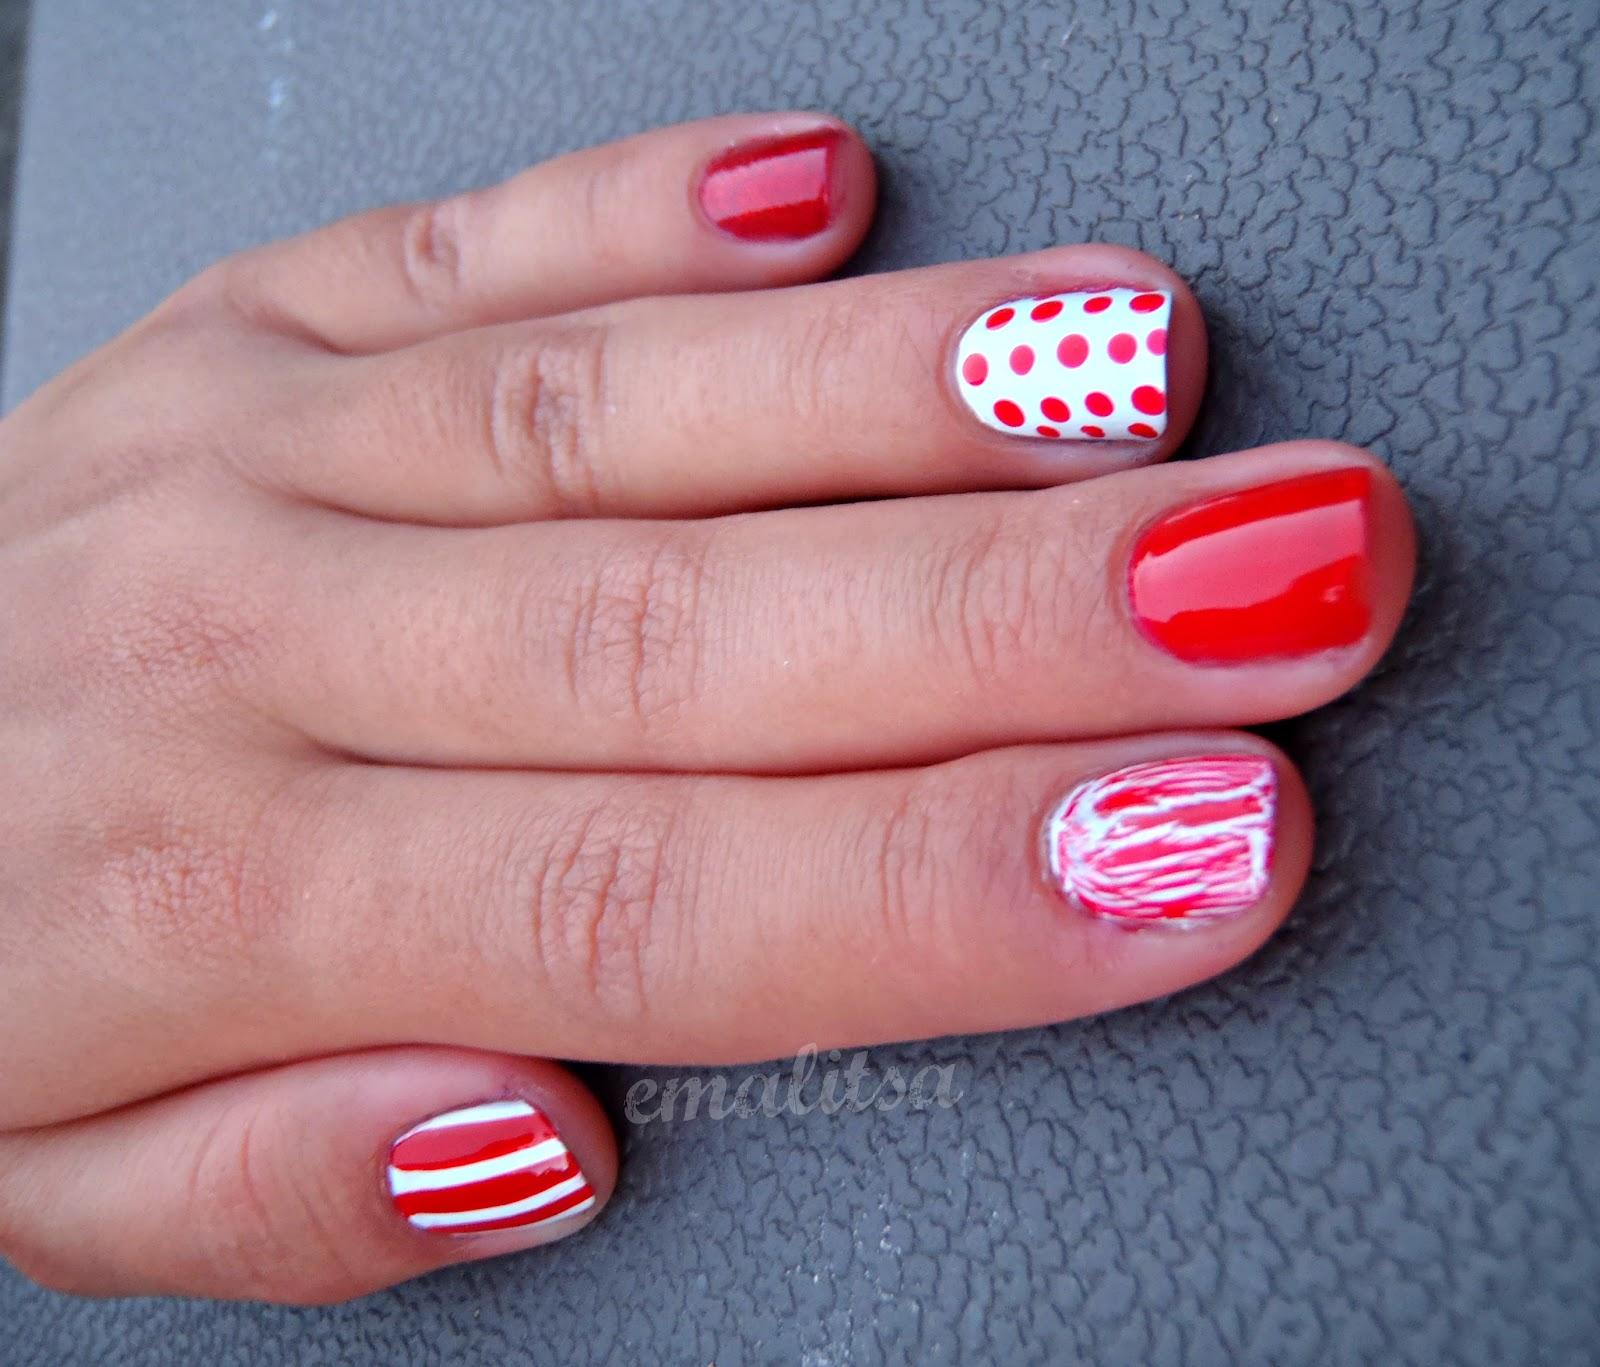 Nail art accessories online images nail art and nail design ideas nail art supplies in canada european standards of manicure photo albui page nail art supplies online prinsesfo Image collections